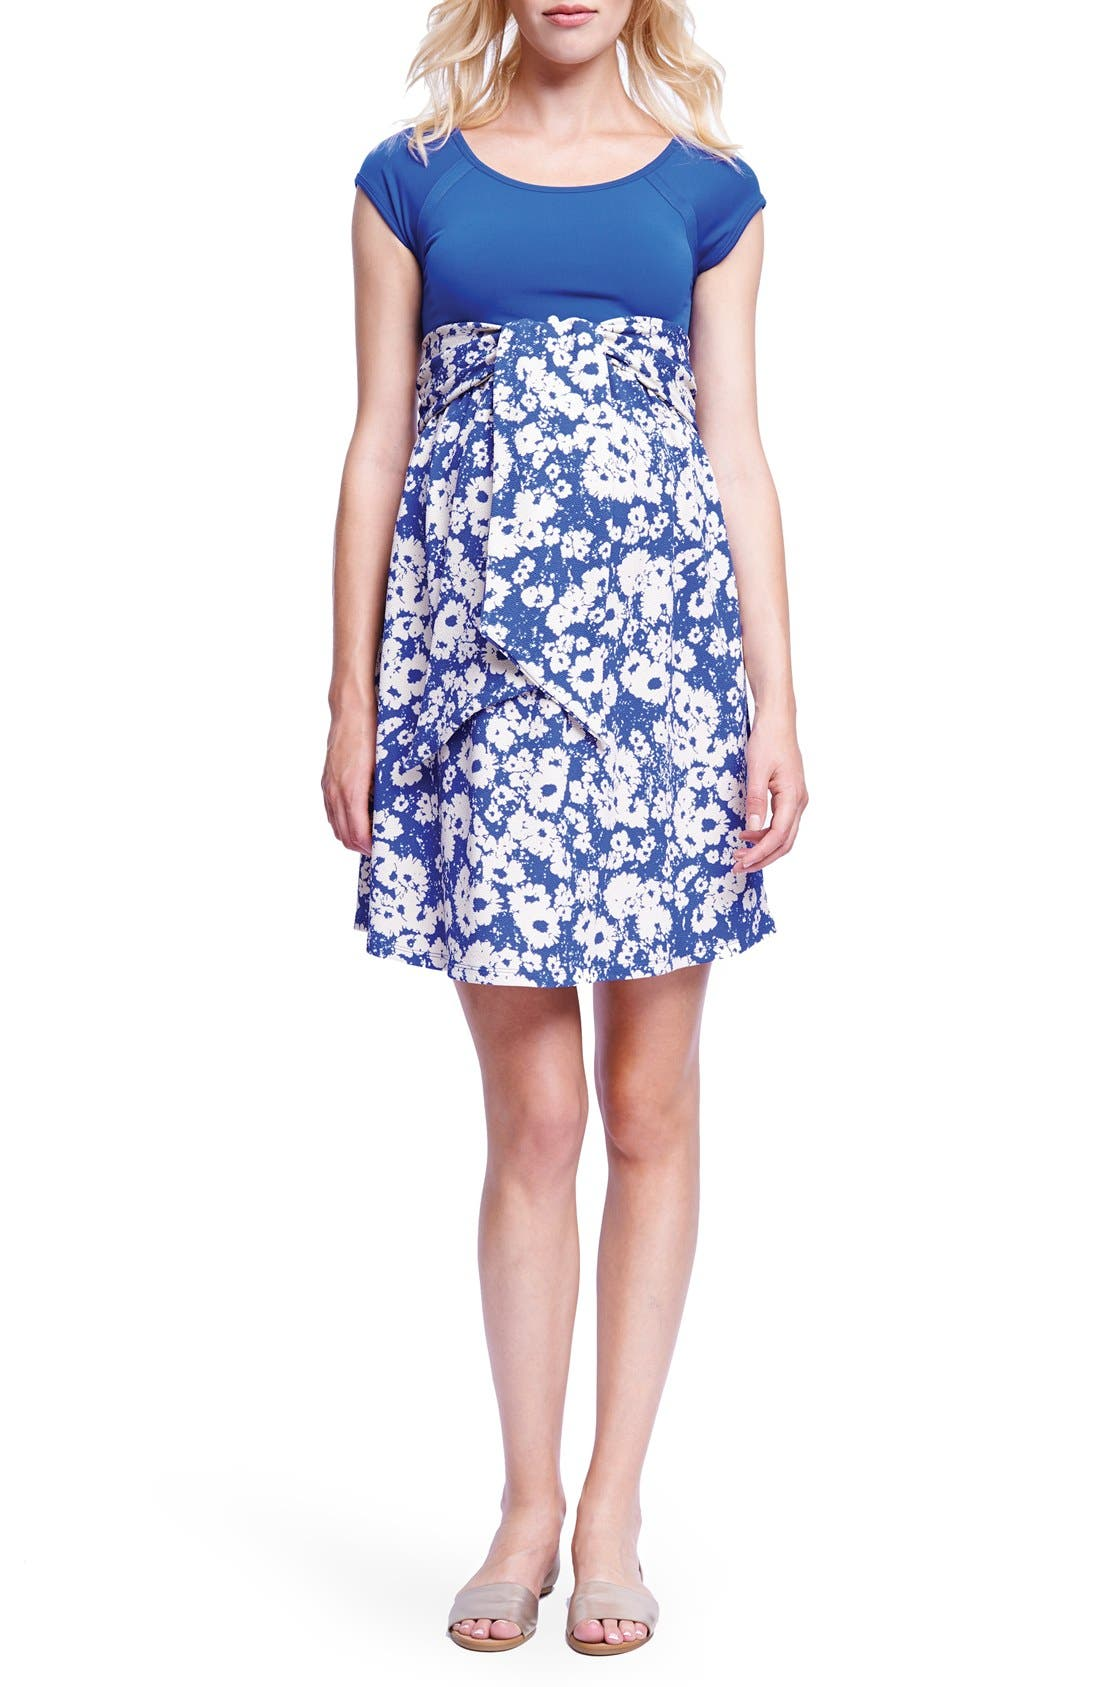 Tie Front Maternity Dress,                         Main,                         color, ROYAL BLUE/ ABSTRACT DAISY